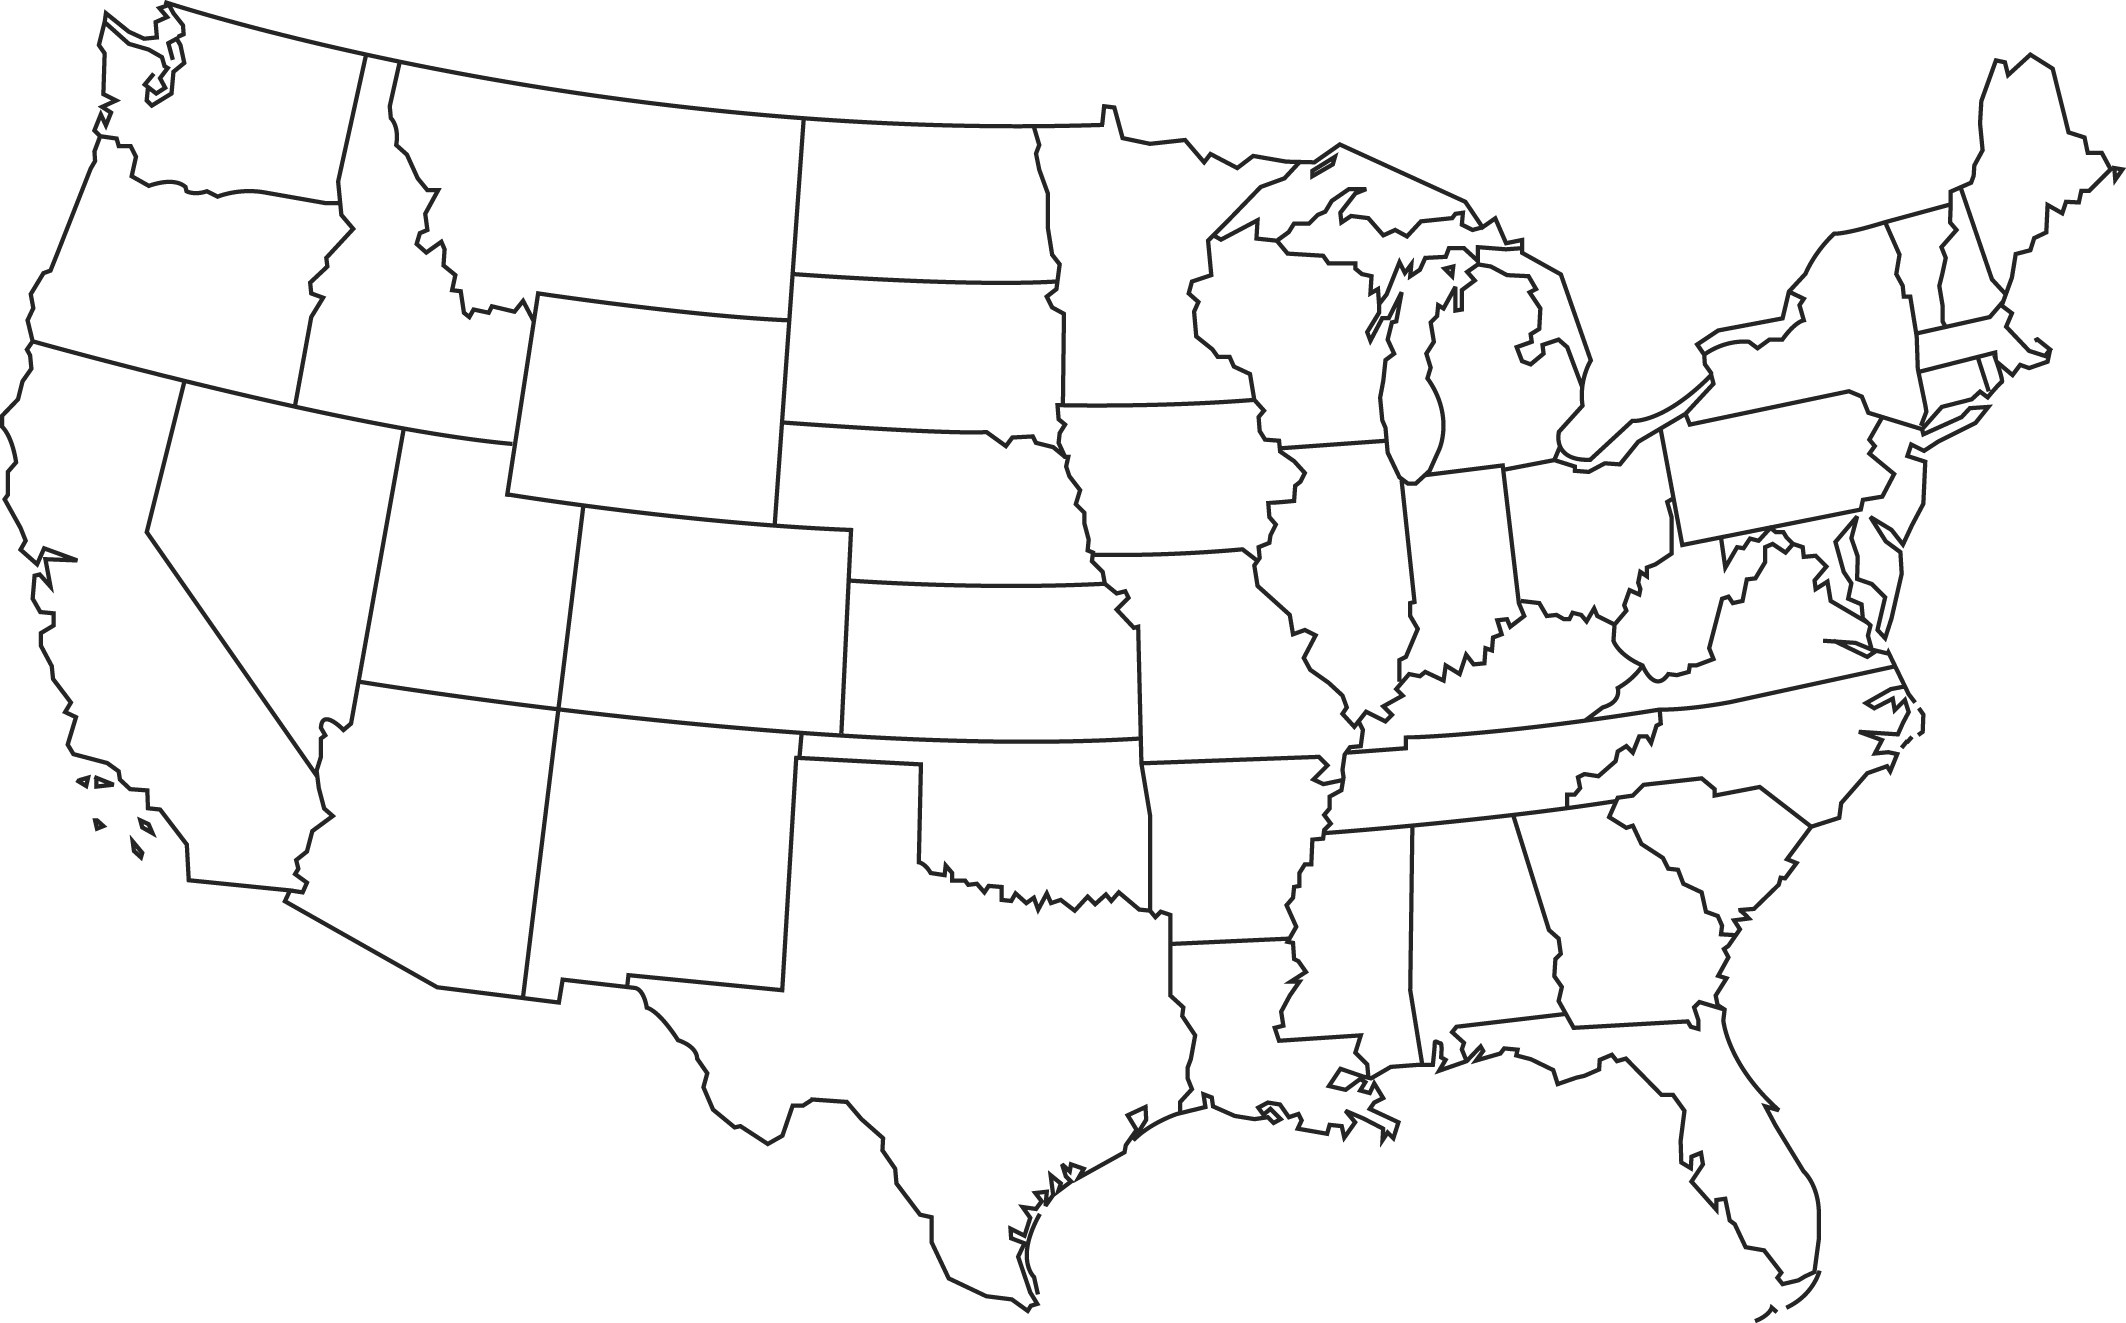 Geography Blog Outline Maps United States - United states outline map free printable